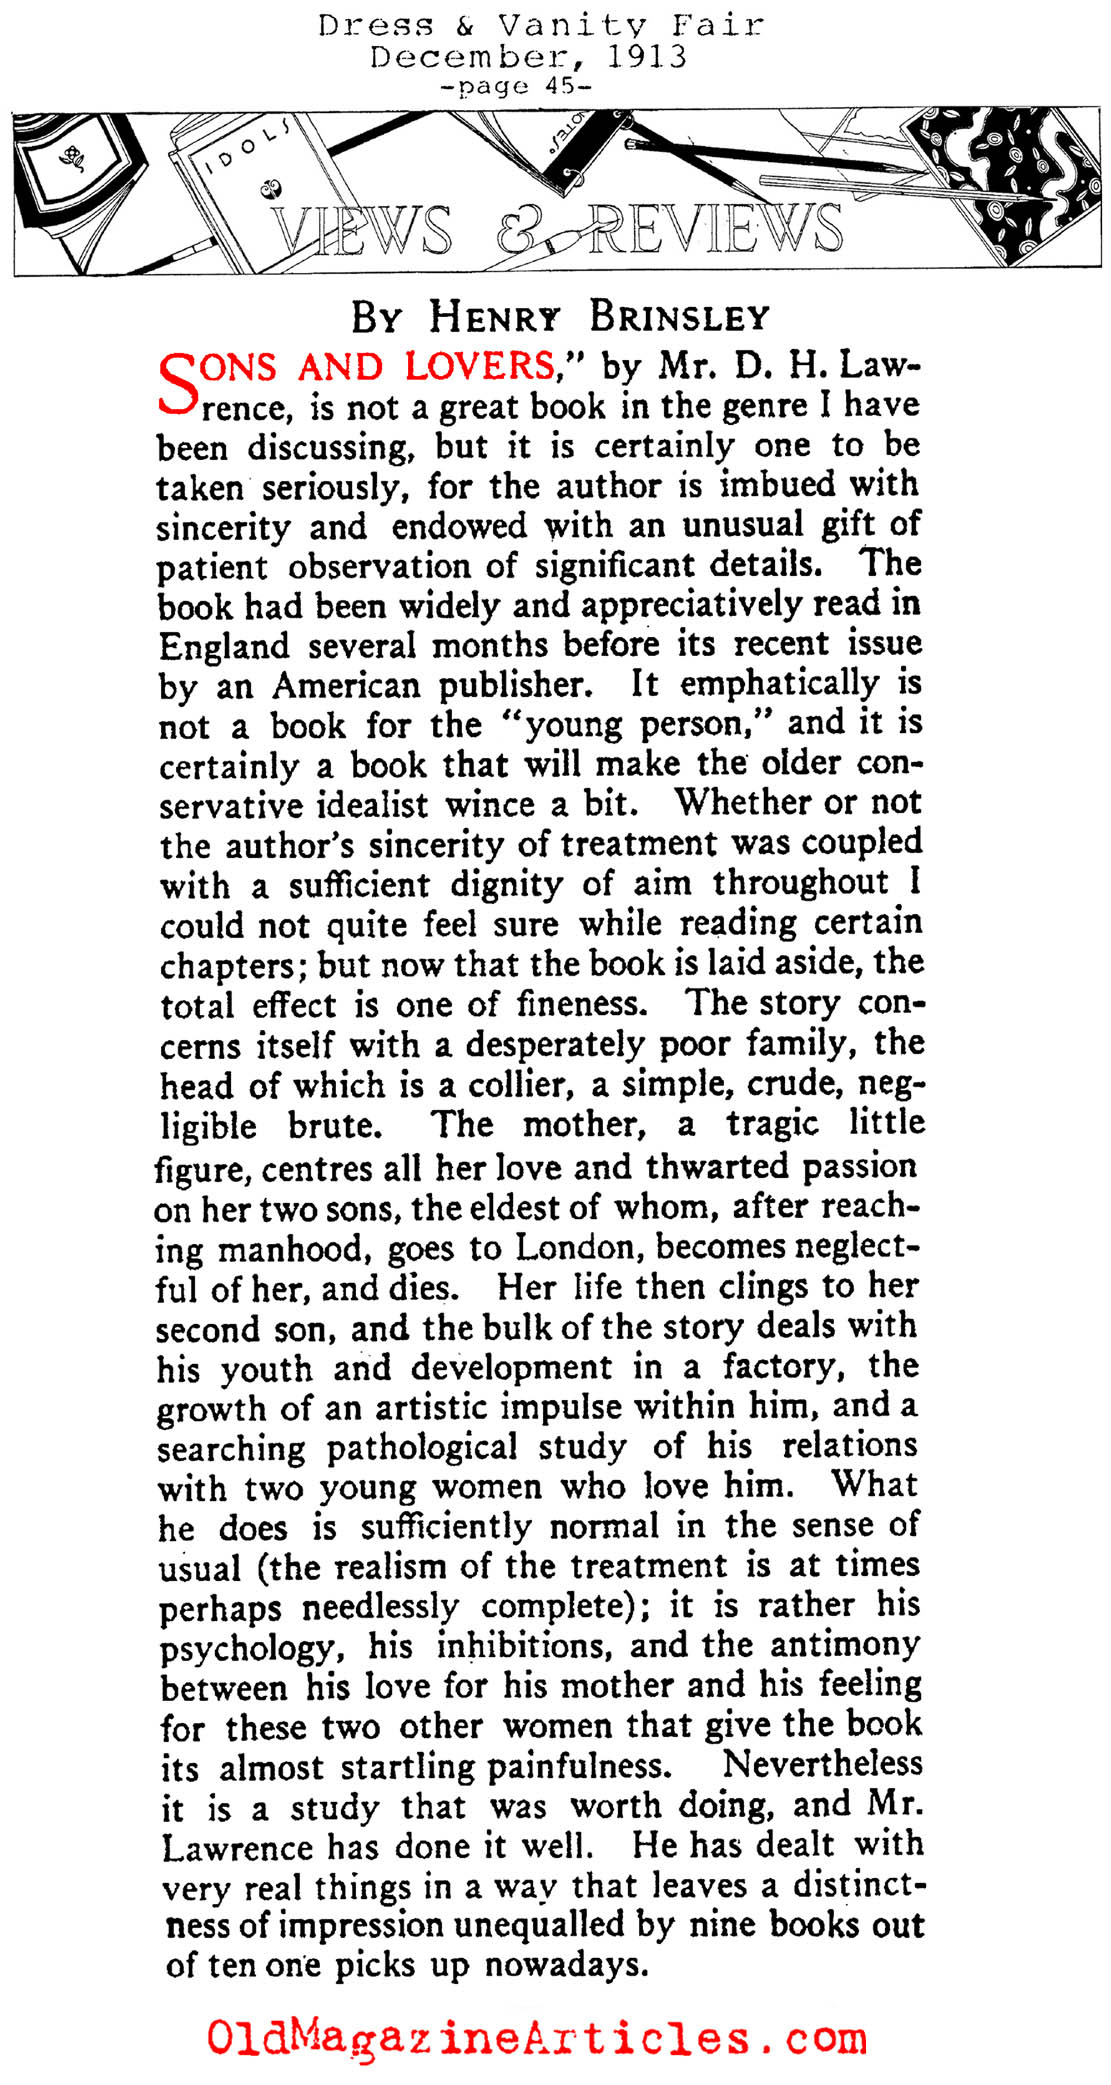 One of the First Reviews of 'Sons and Lovers' (Vanity Fair, 1913)